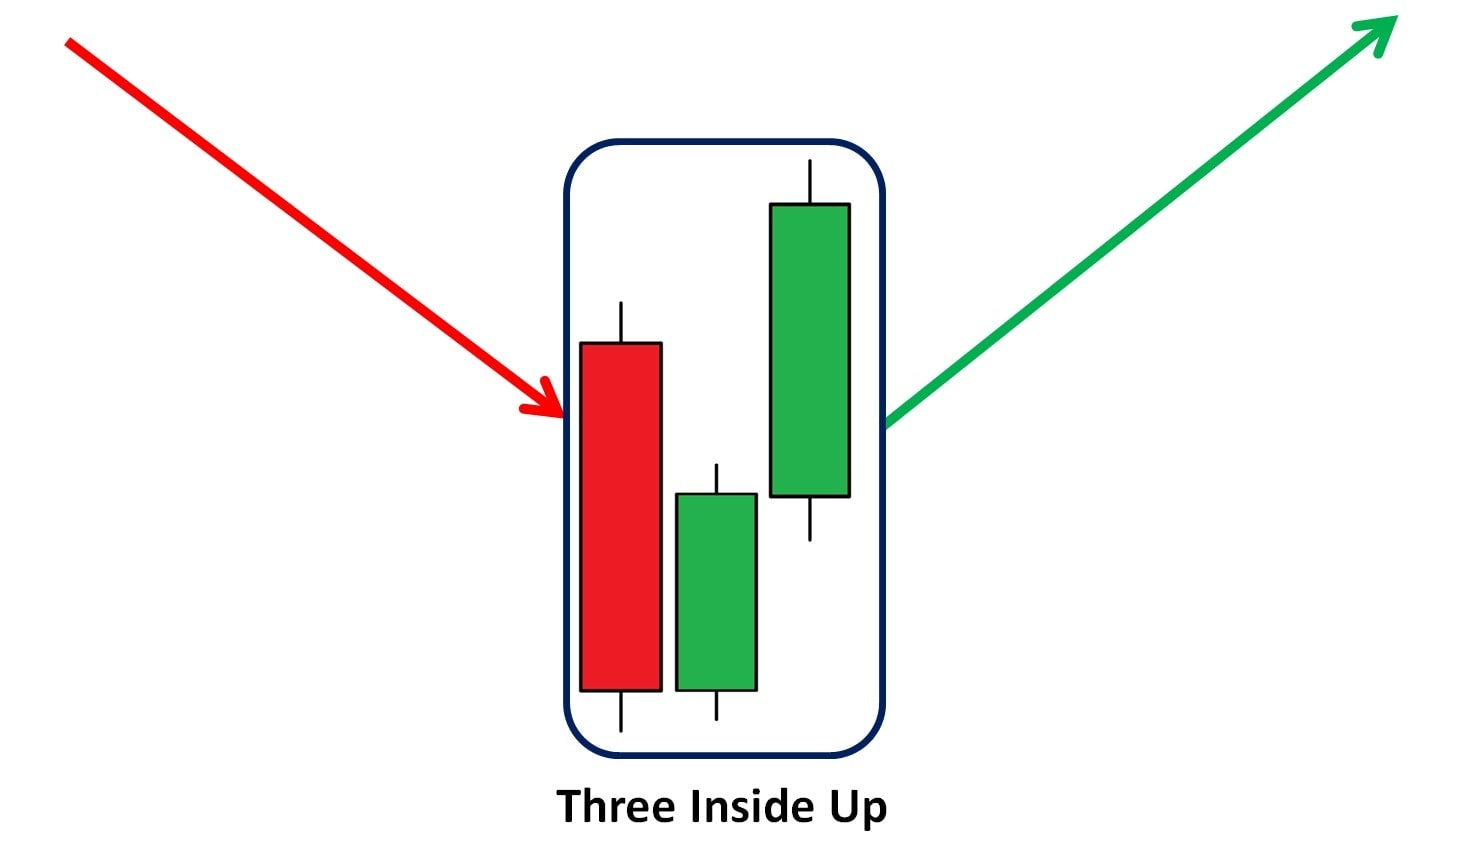 Three Inside Up candlestick meaning